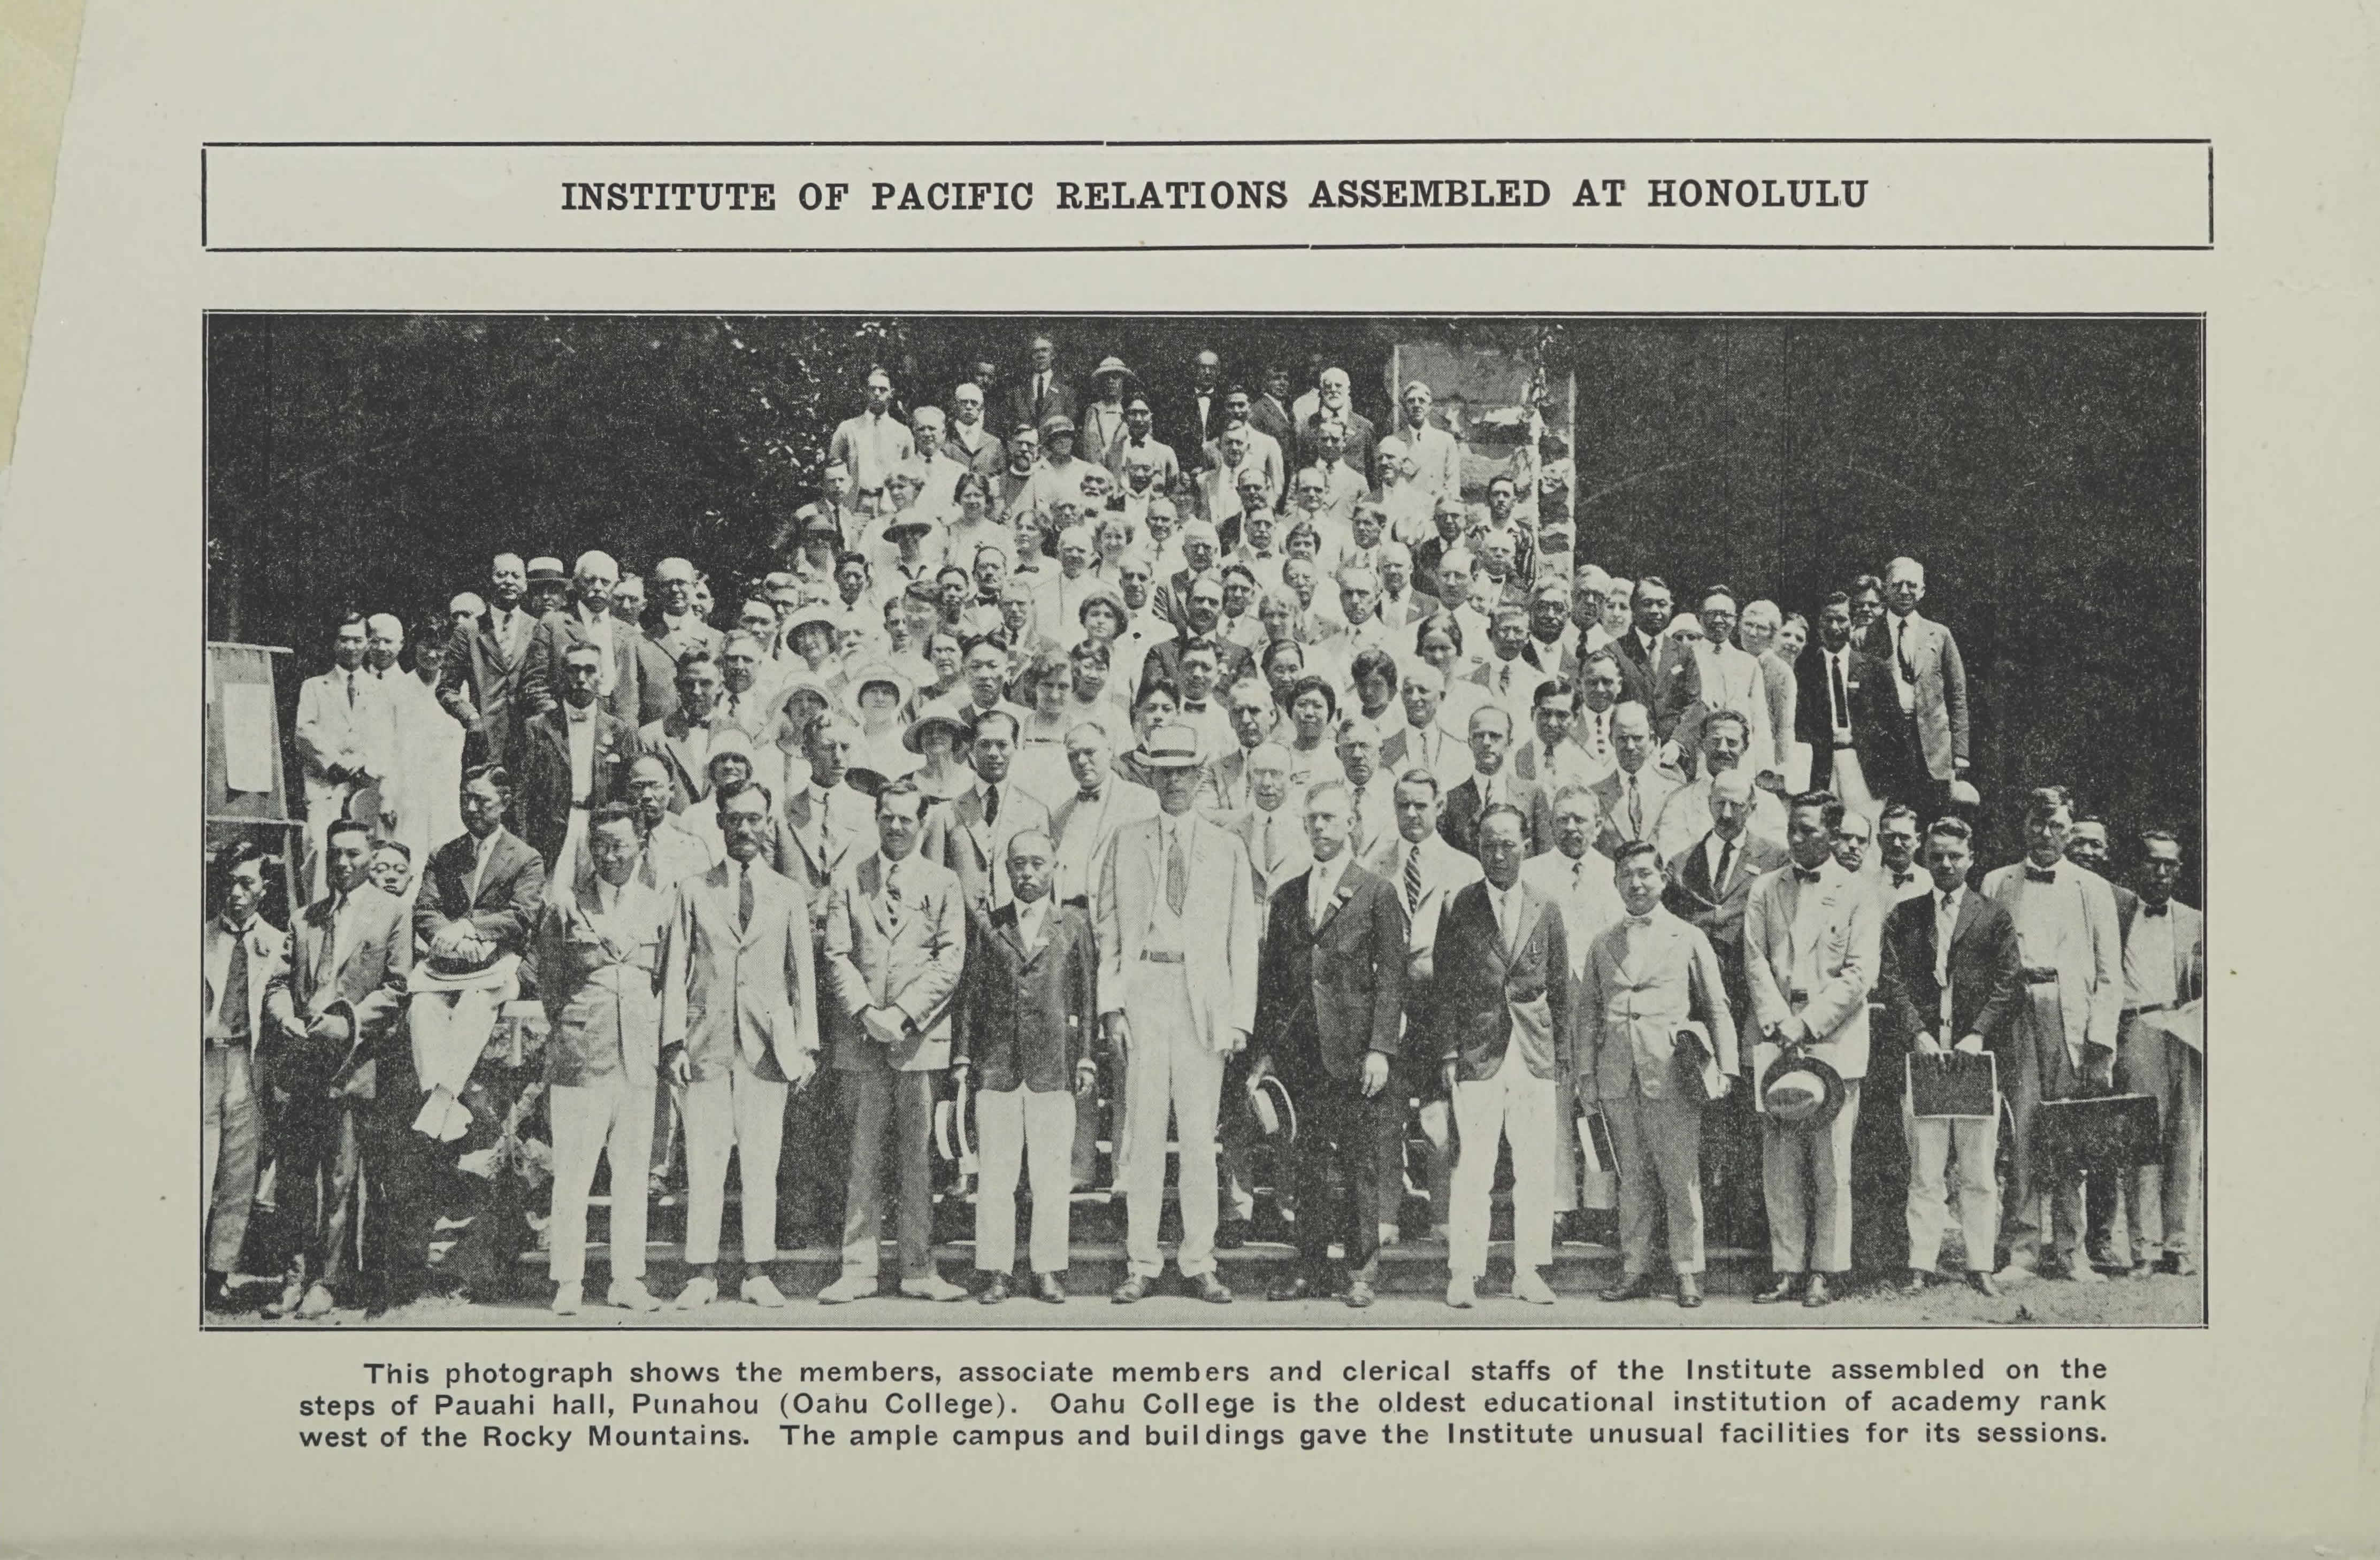 Ray Lyman Wilbur, chairman. (Jun. 30-Jul. 14, 1925). Organizing Conference Record, PROCEEDINGS, Institute of Pacific Relations, Honolulu, Hawaii, p. 2. Institute of Pacific Relations.